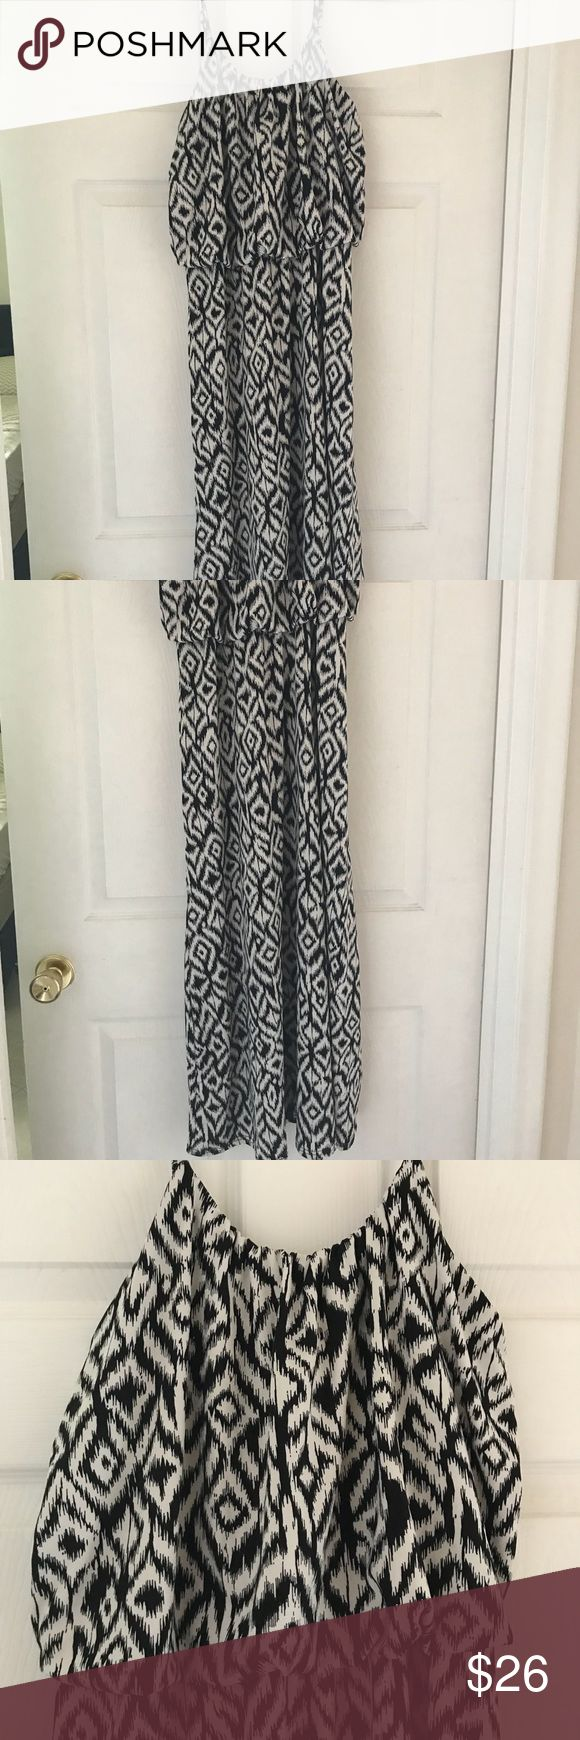 Tribal Maxi dress Black & white tribal print maxi dress. Has adjustable straps, not see through at all!! Is cinched under the bust and creates a flouncy, overlay look. Made with lycra so it is super stretchy! Size tag was cut out for comfort, but it is a medium. Dresses Maxi